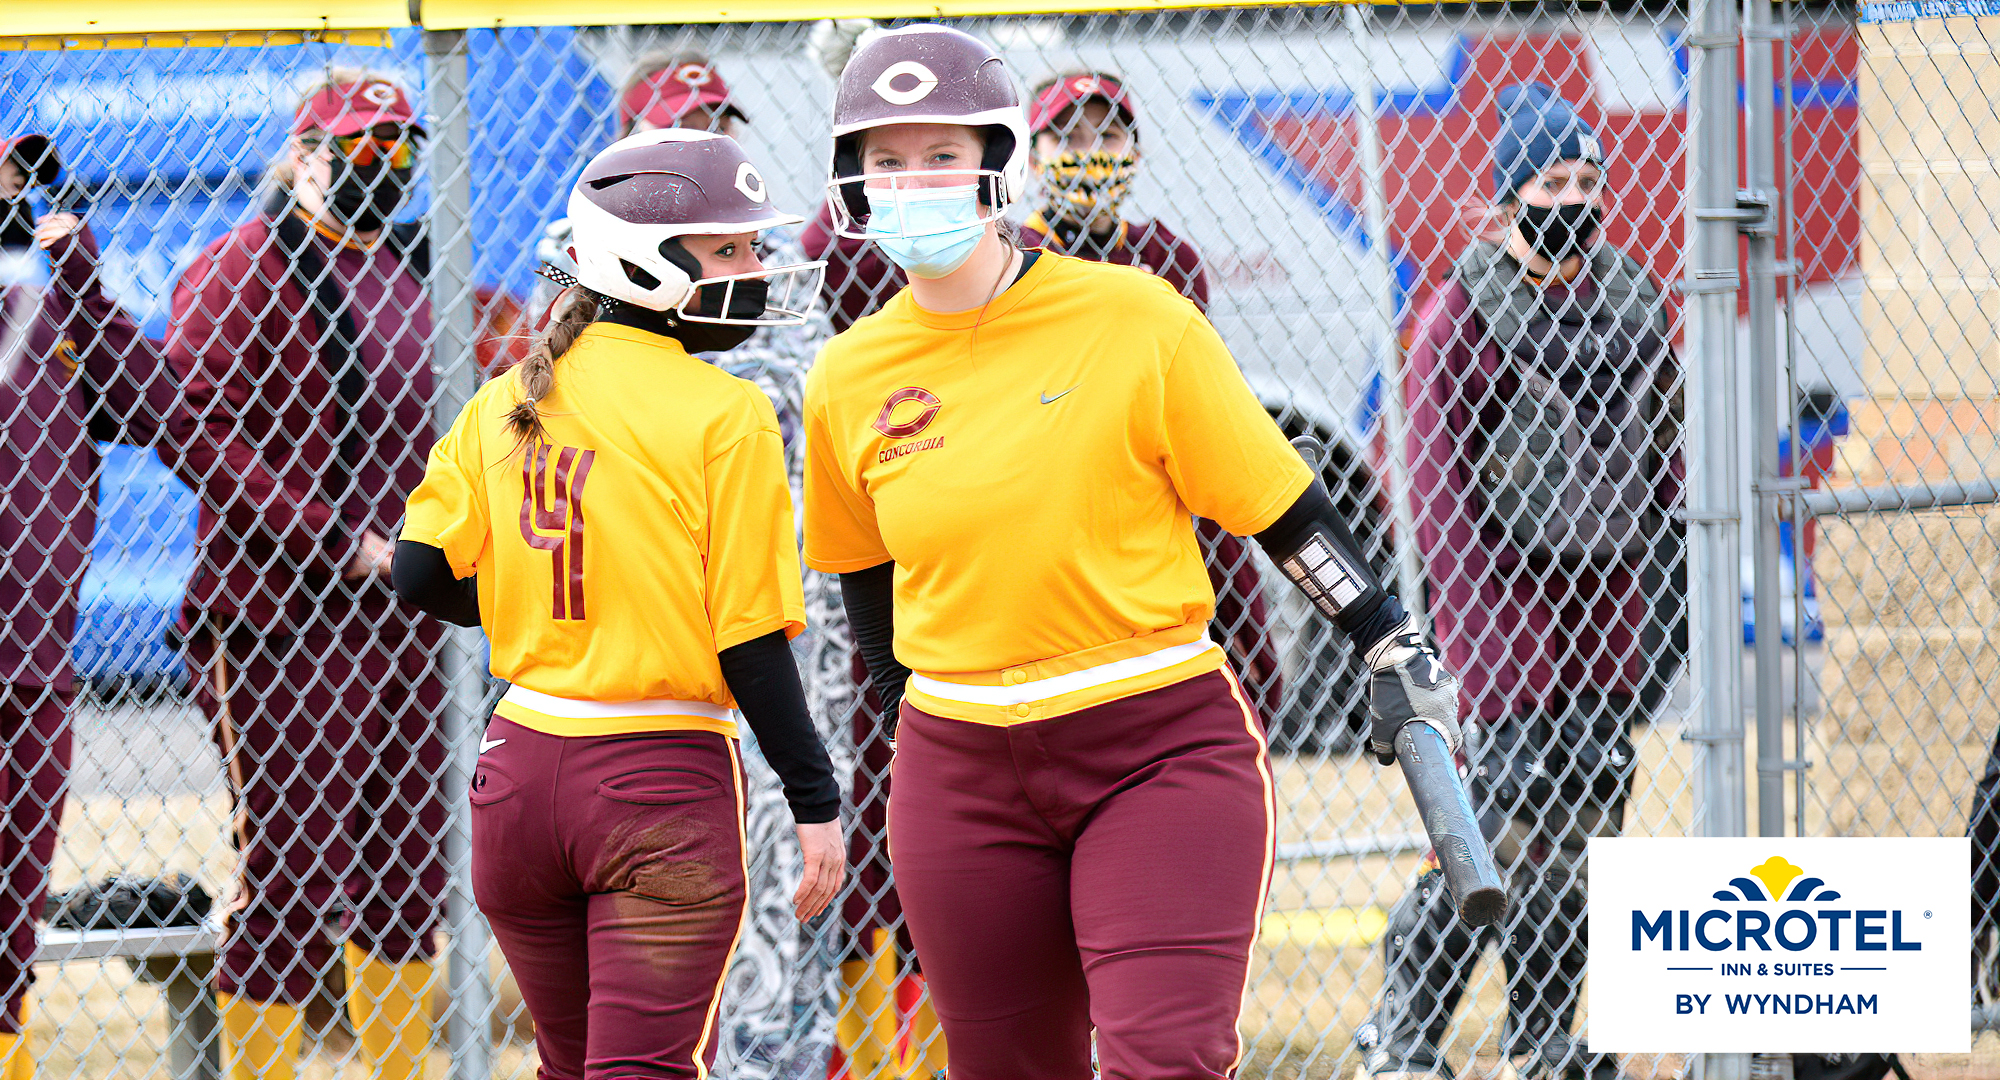 Senior Taylor Erholtz hit a home run in both games of the Cobbers' DH at previously nationally ranked St. Olaf.